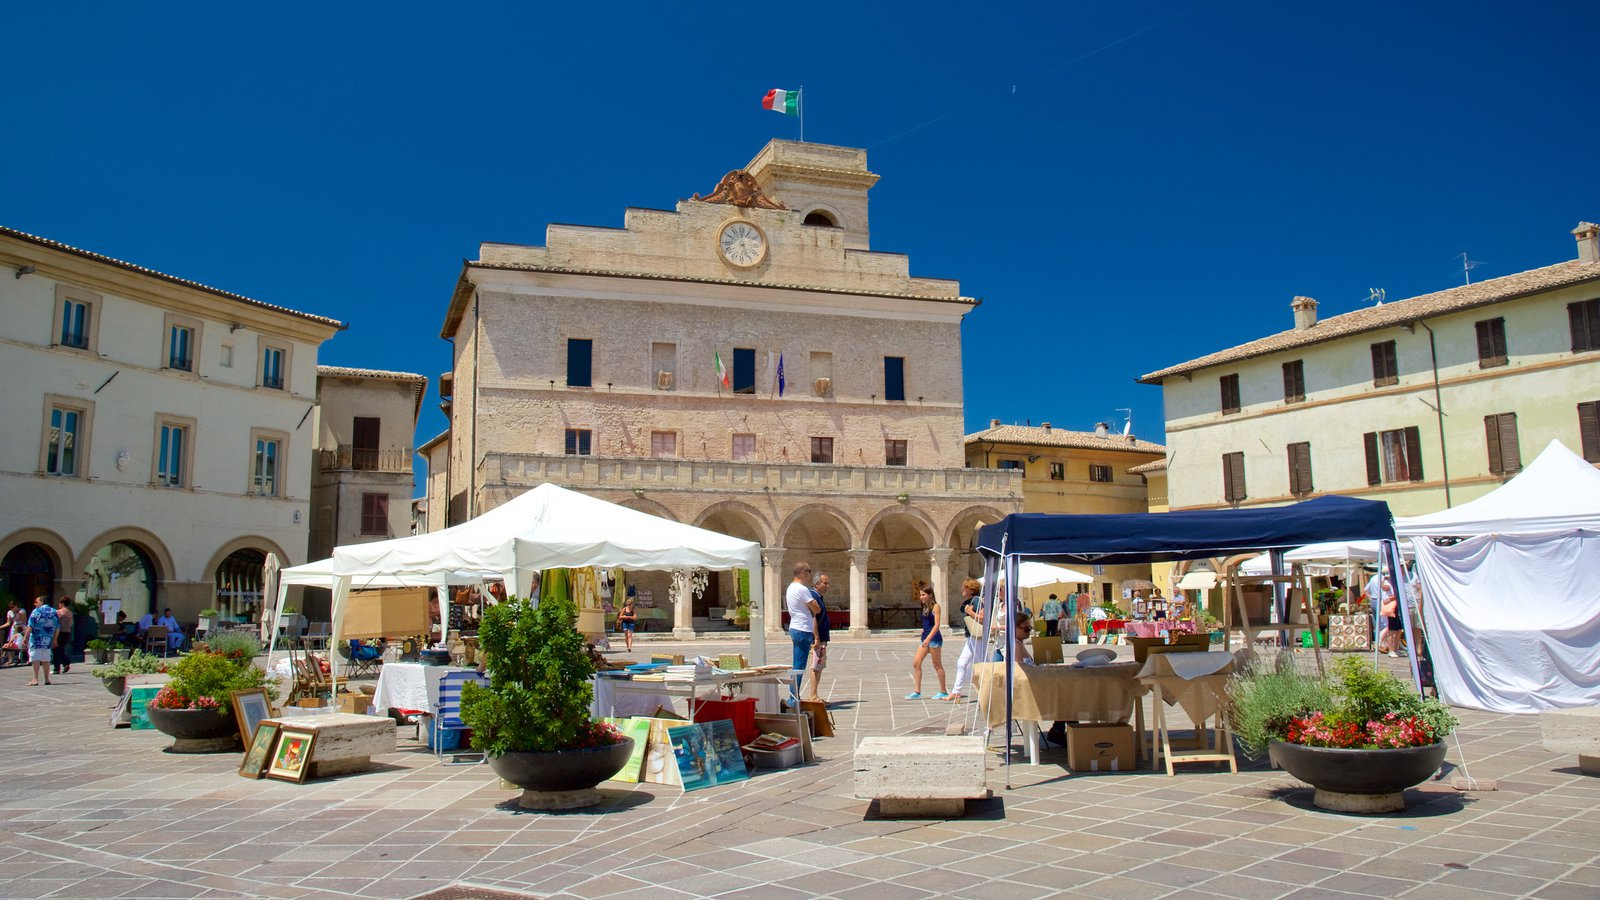 Montefalco which includes markets and a square or plaza